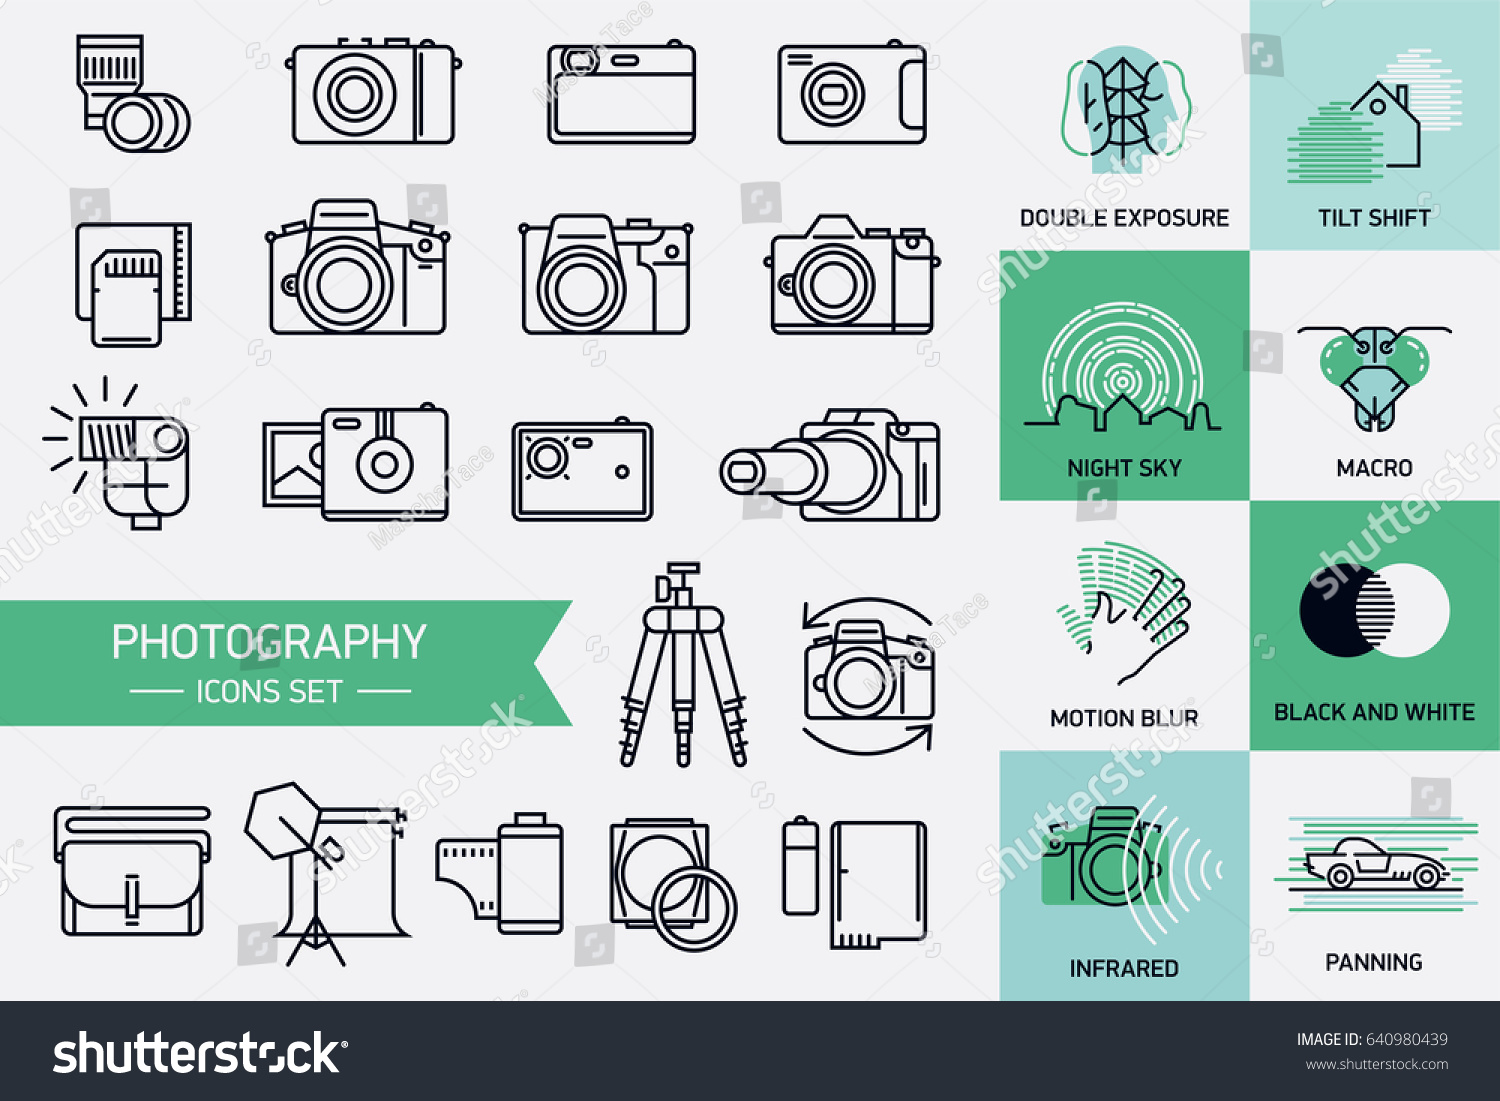 Vector icons on photography equipment, techniques and principles in trendy  linear flat design. Design